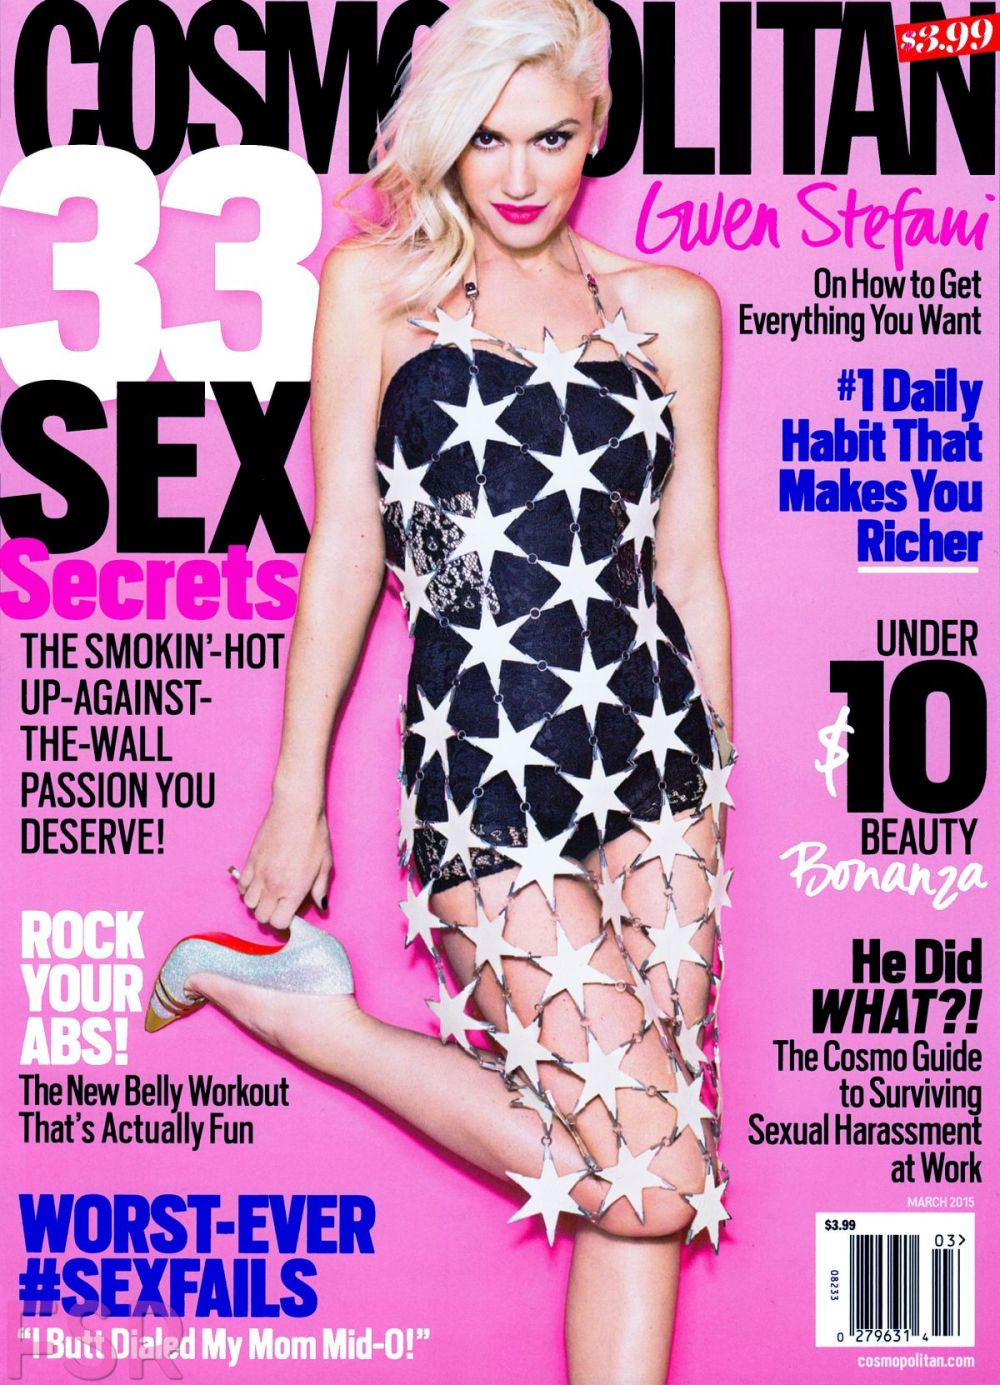 gwen-stefani-photoshoot-for-cover-of-cosmopolitan-magazine-march-2015_1